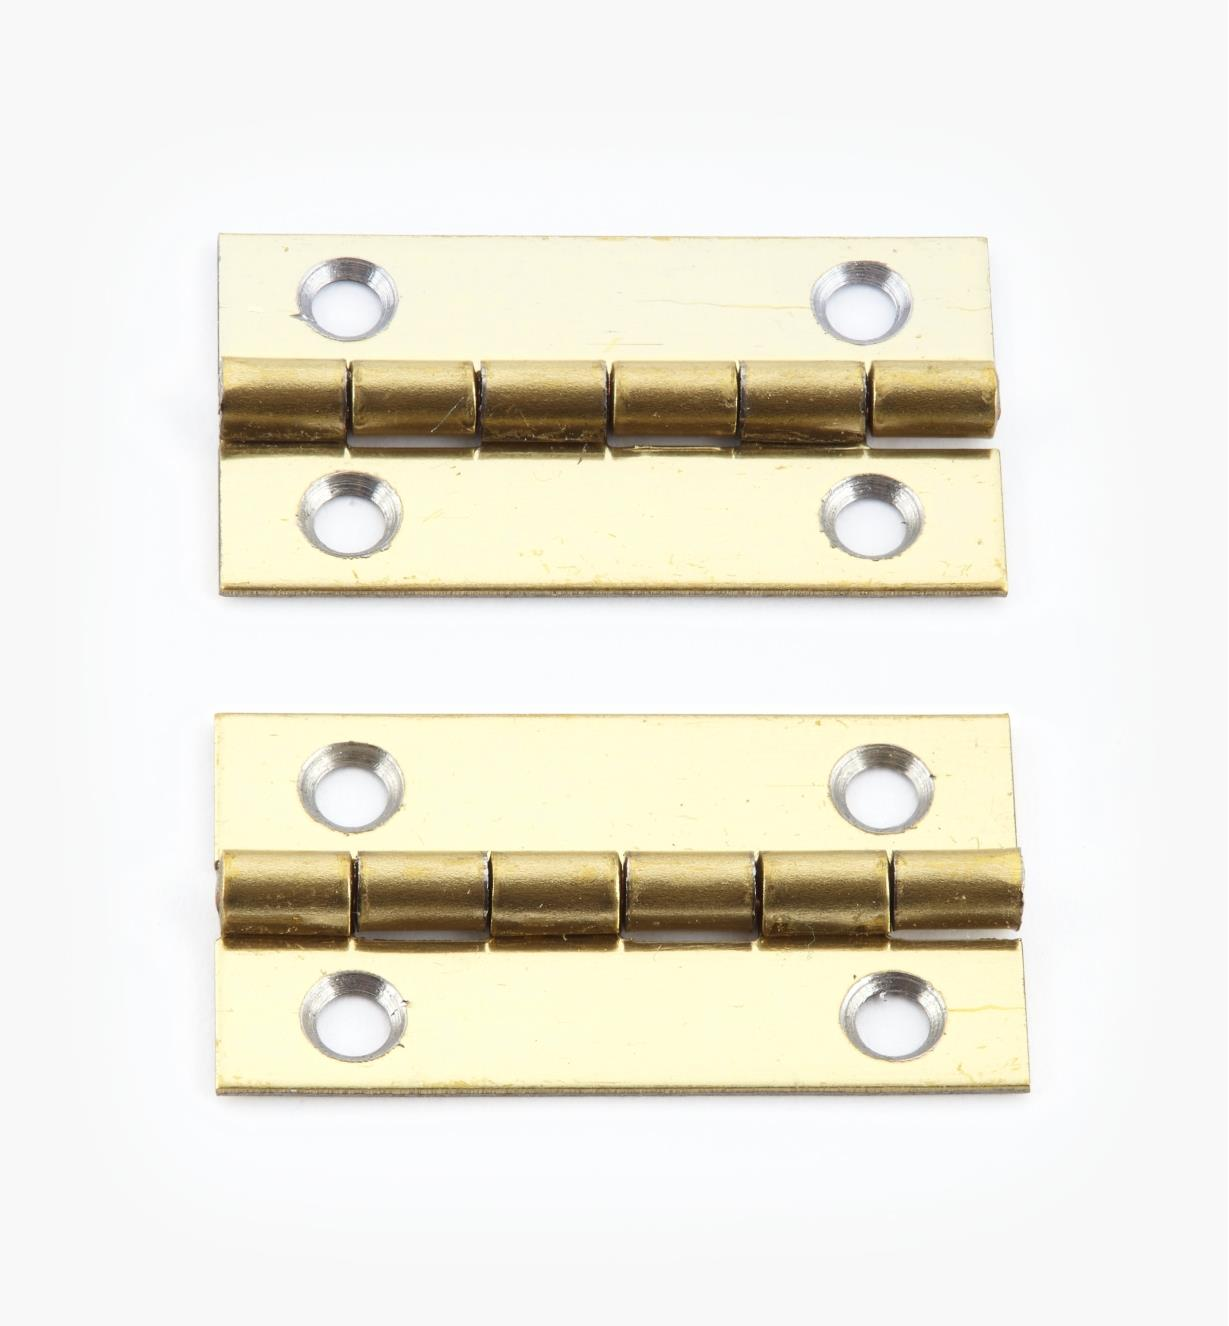 00D3011 - 30mm x 17mm Small Box Hinges, pr.